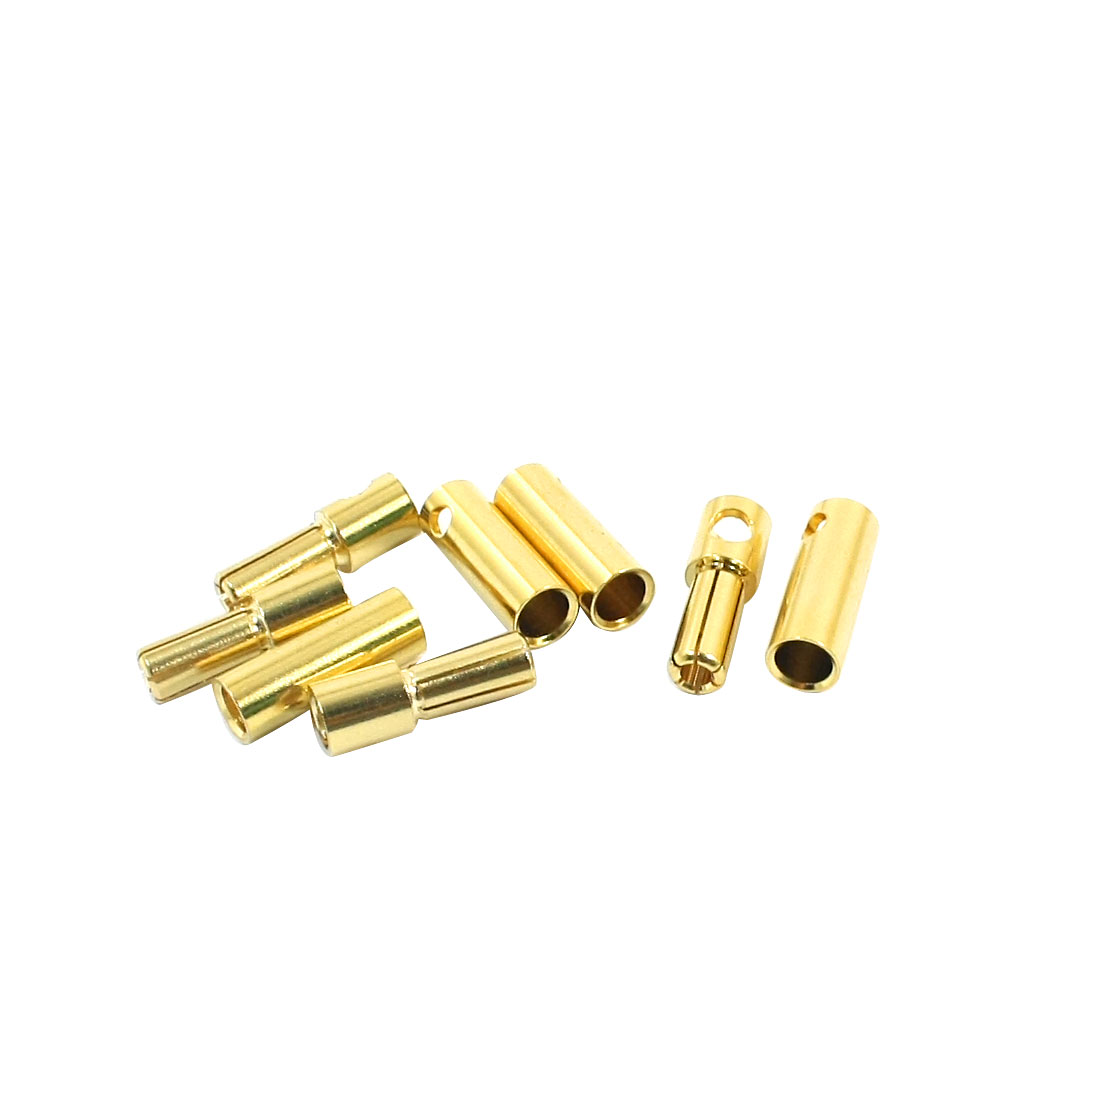 RC Brushless Motor Li-Po Battery Gold Tone Metal Male Female Banana Connector Adapter 5mm Dia 4Pairs